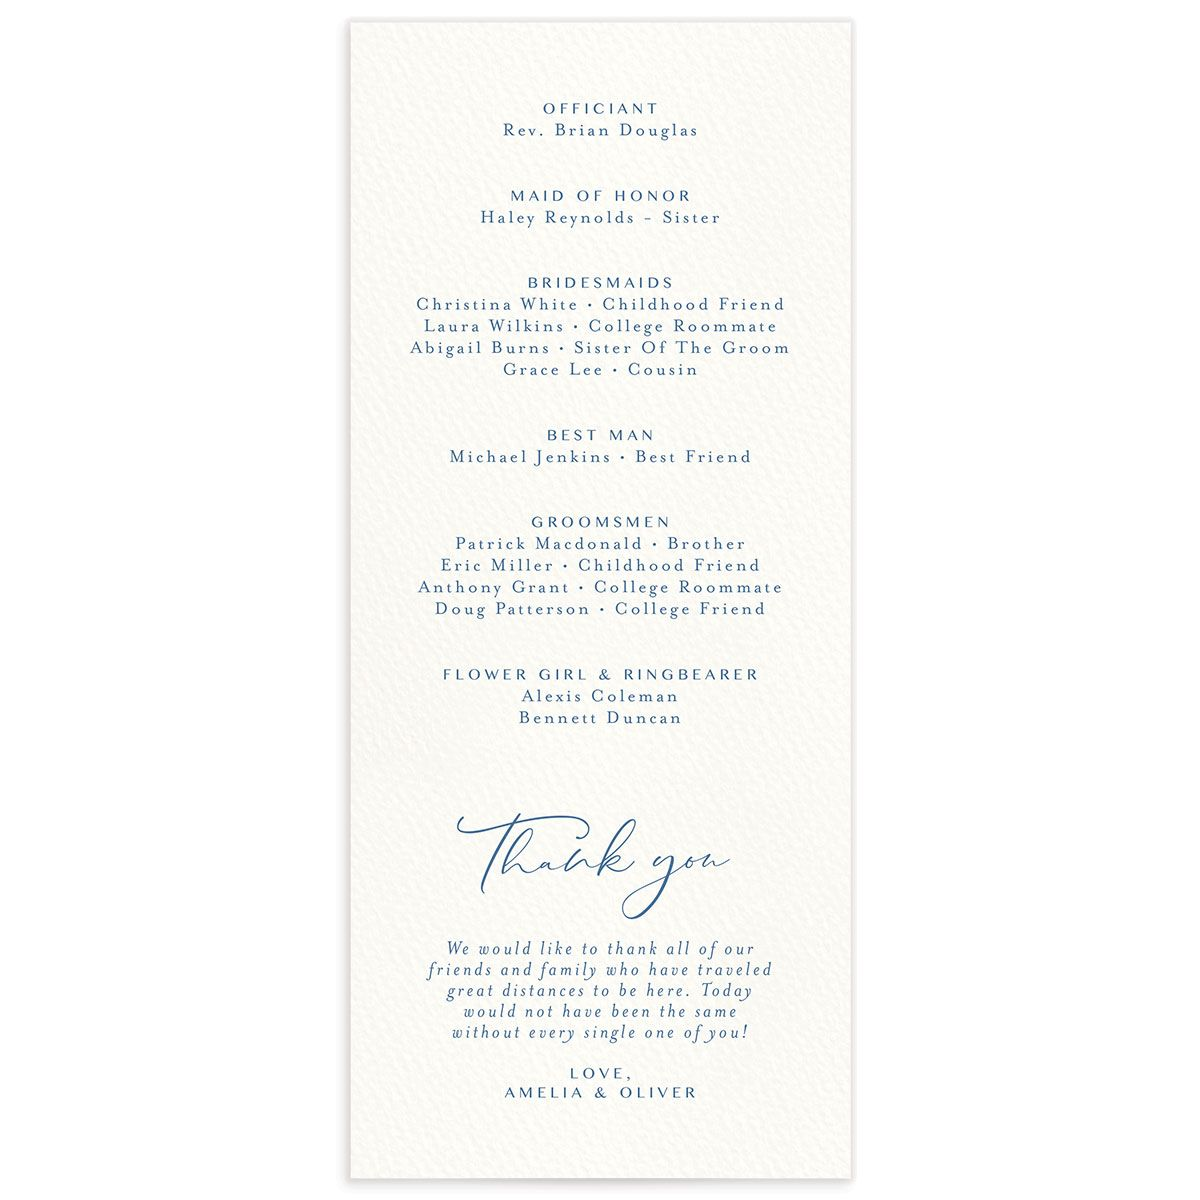 Coastal Love wedding programs back in blue